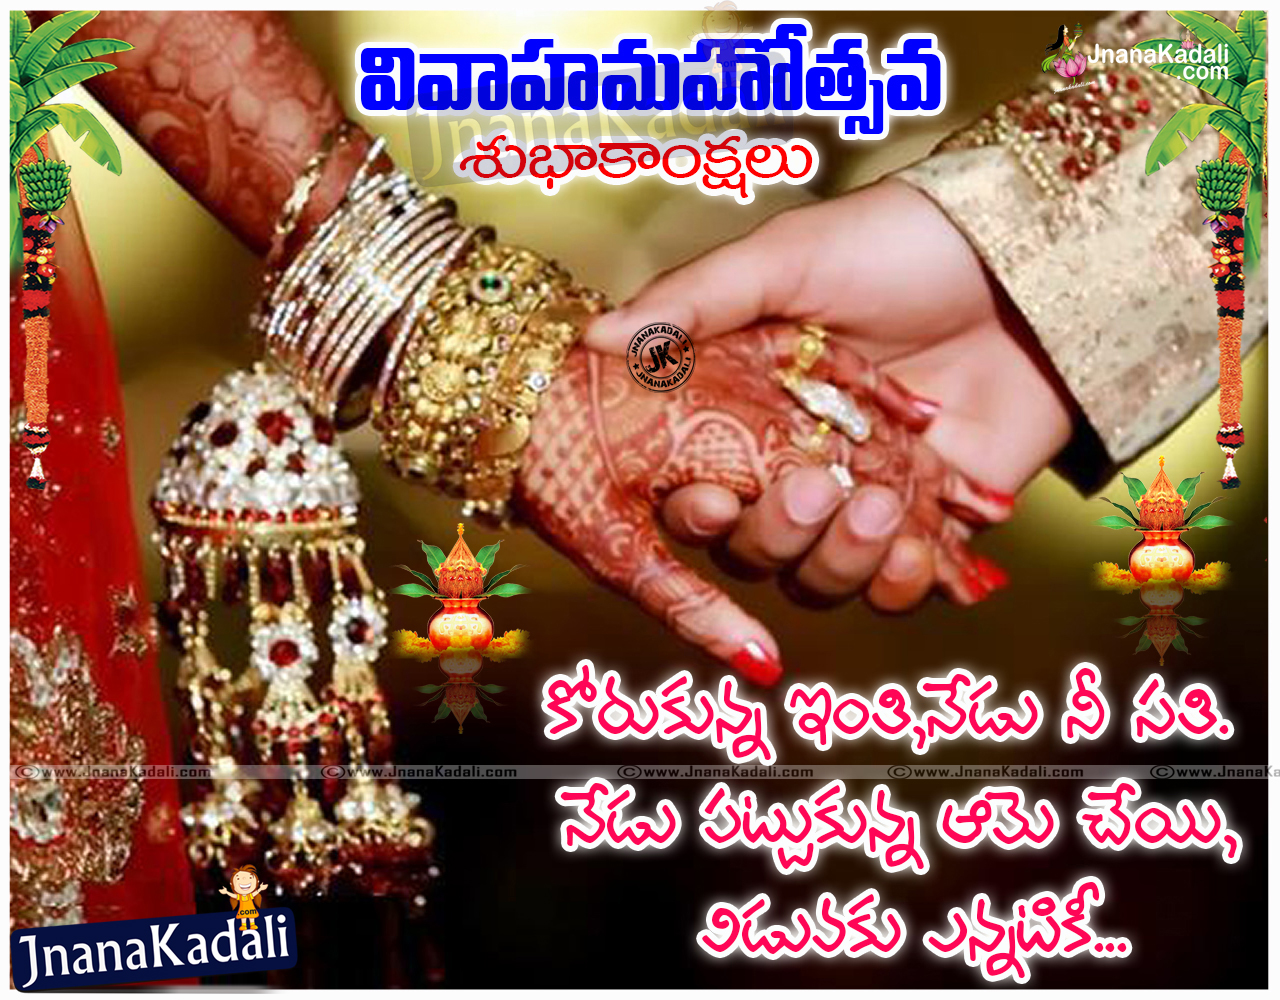 Here Is A Telugu Beautiful Marriage Wishes Messages And Wallpapers Free Inspirational For All Top